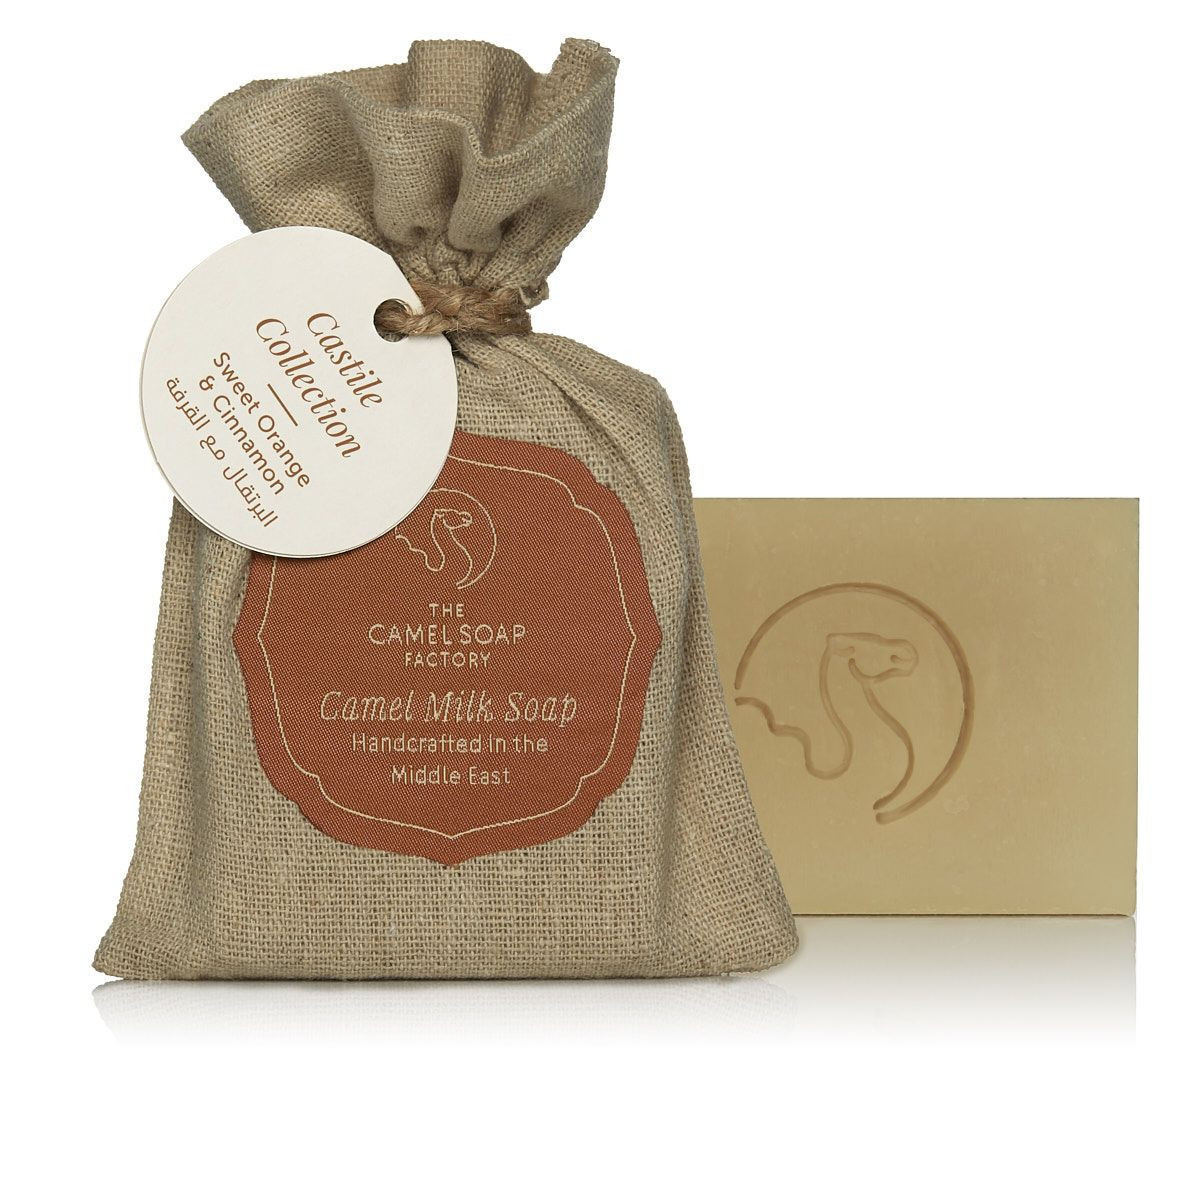 Camel milk soap Cinnamon and Orange - Castile Collection